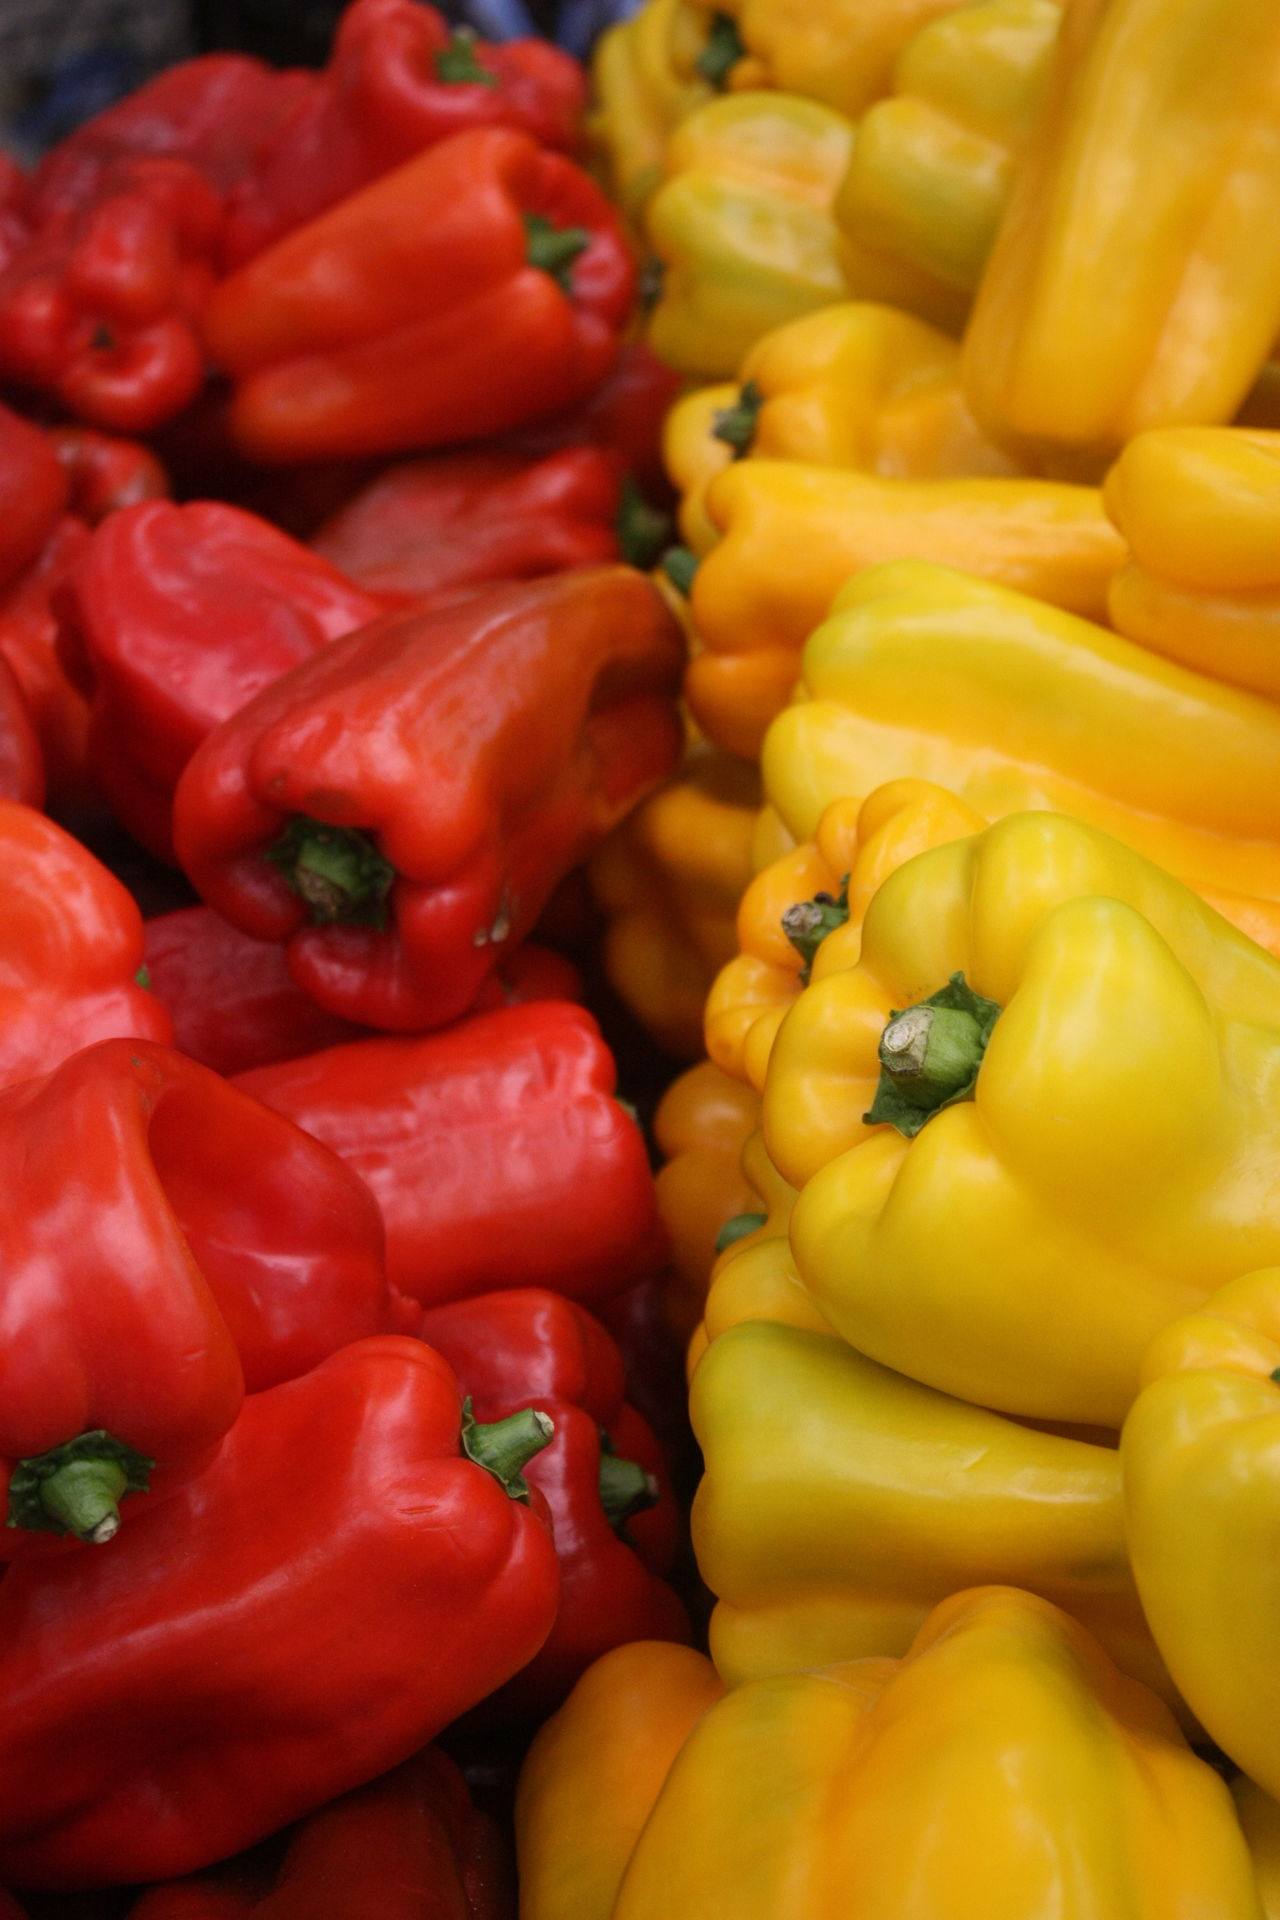 Abundance Backgrounds Bell Pepper Business Choice Close-up Day Food Food And Drink For Sale Freshness Full Frame Healthy Eating Healthy Lifestyle Large Group Of Objects Market Market Stall No People Outdoors Red Red Bell Pepper Retail  Supermarket Vegetable Red Color